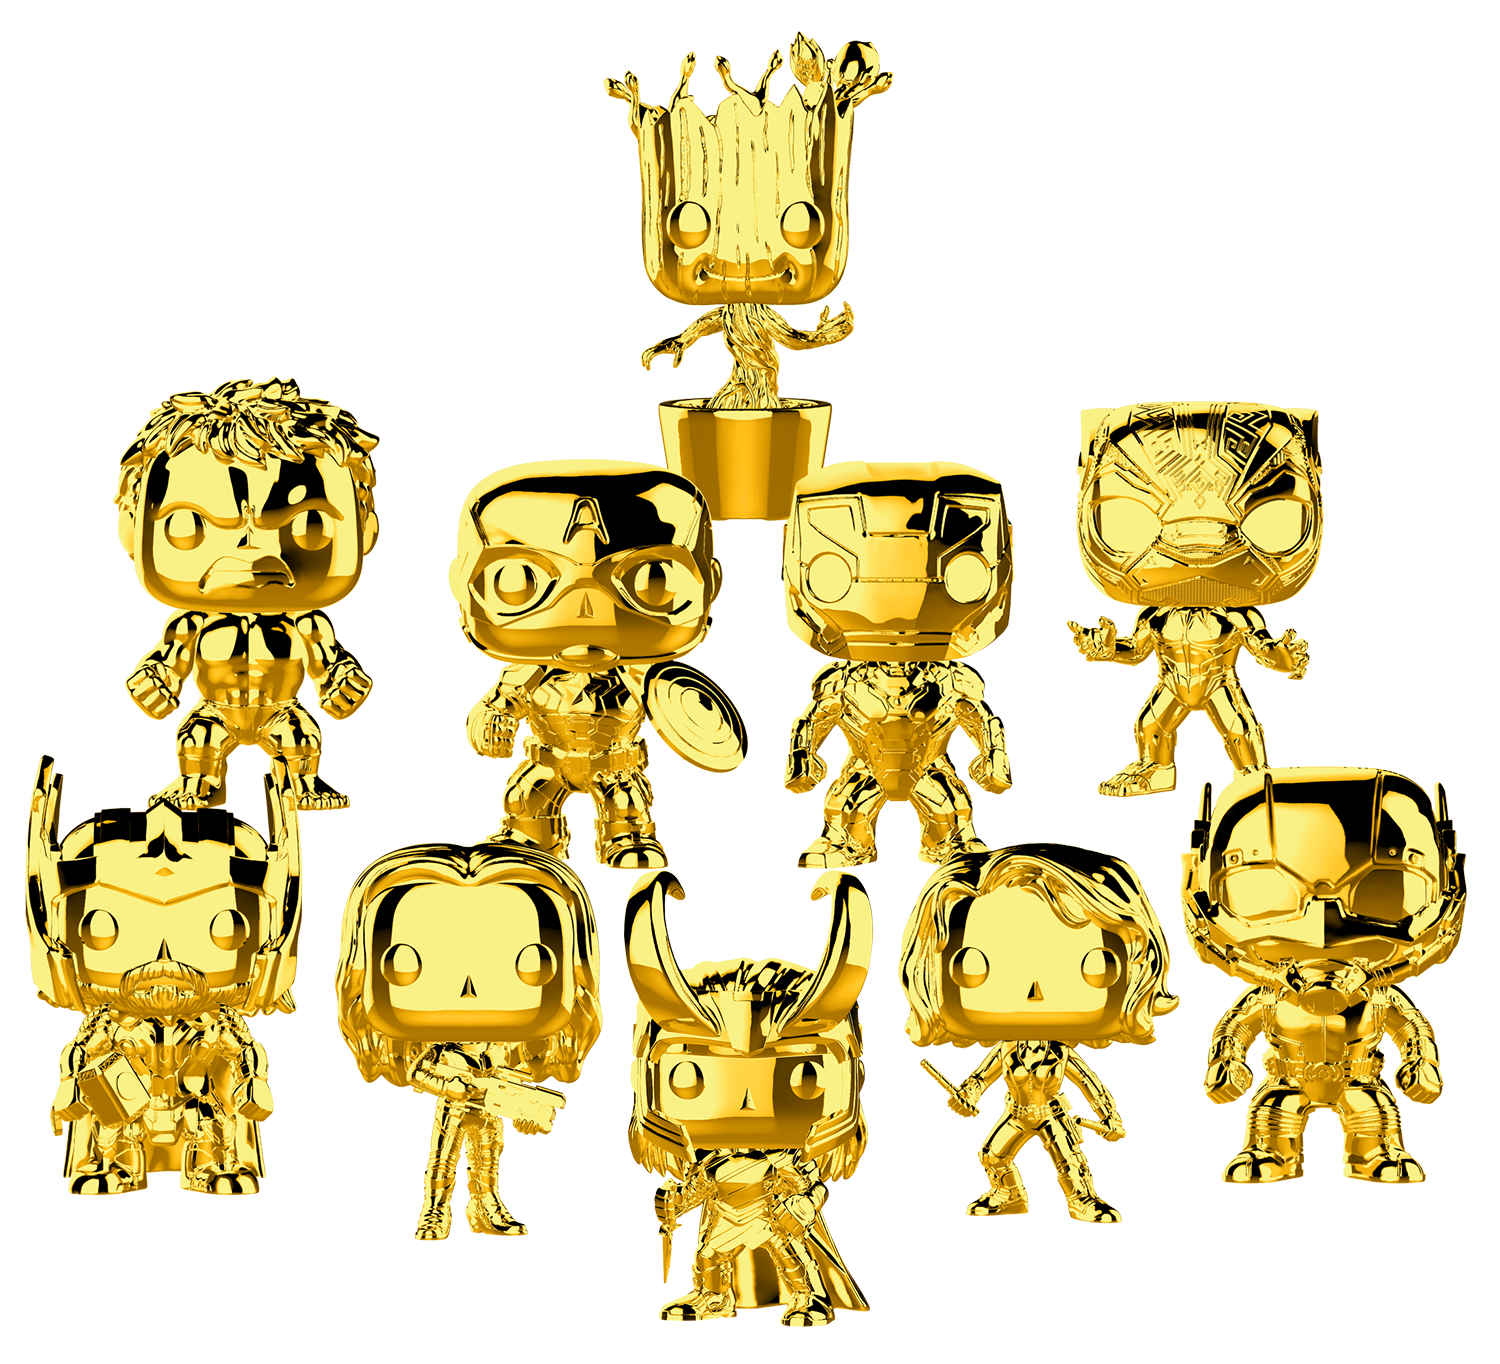 FUNKO POP! Marvel Studios: The First Ten Years Gold Chrome Set of 10